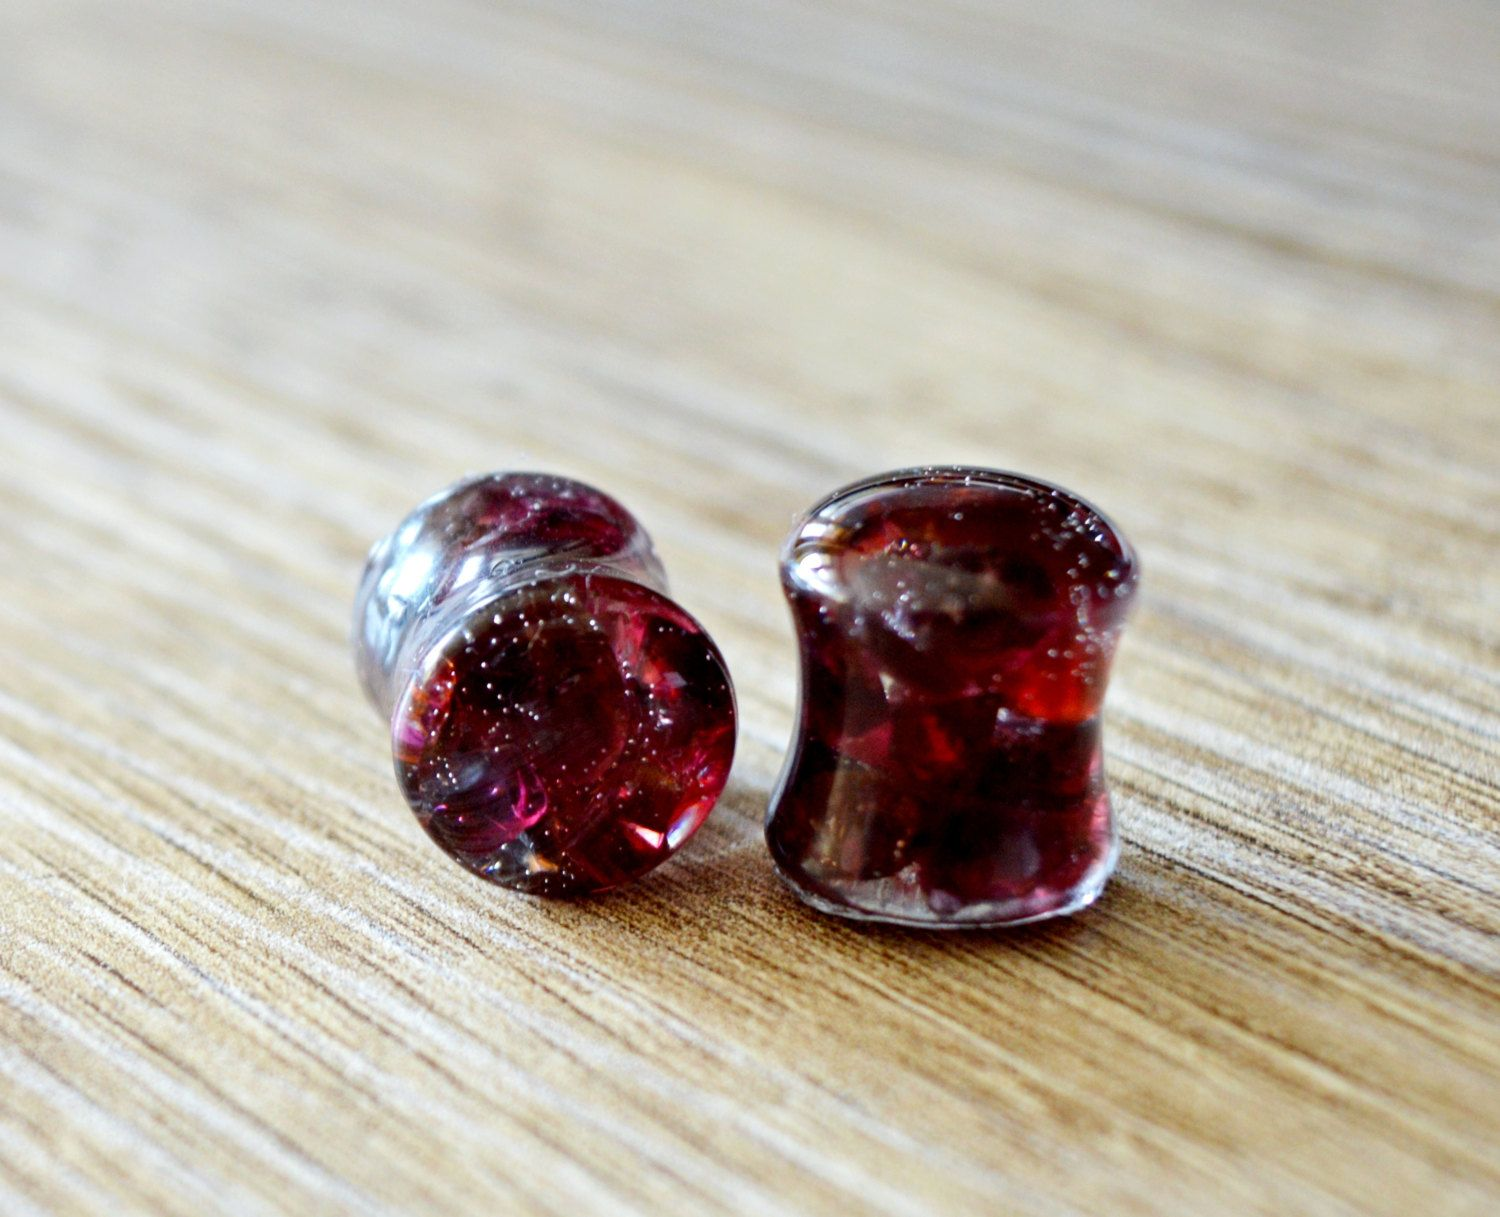 Garnet stone Ears plugs-Double flared or one flared Stainless steel gauges